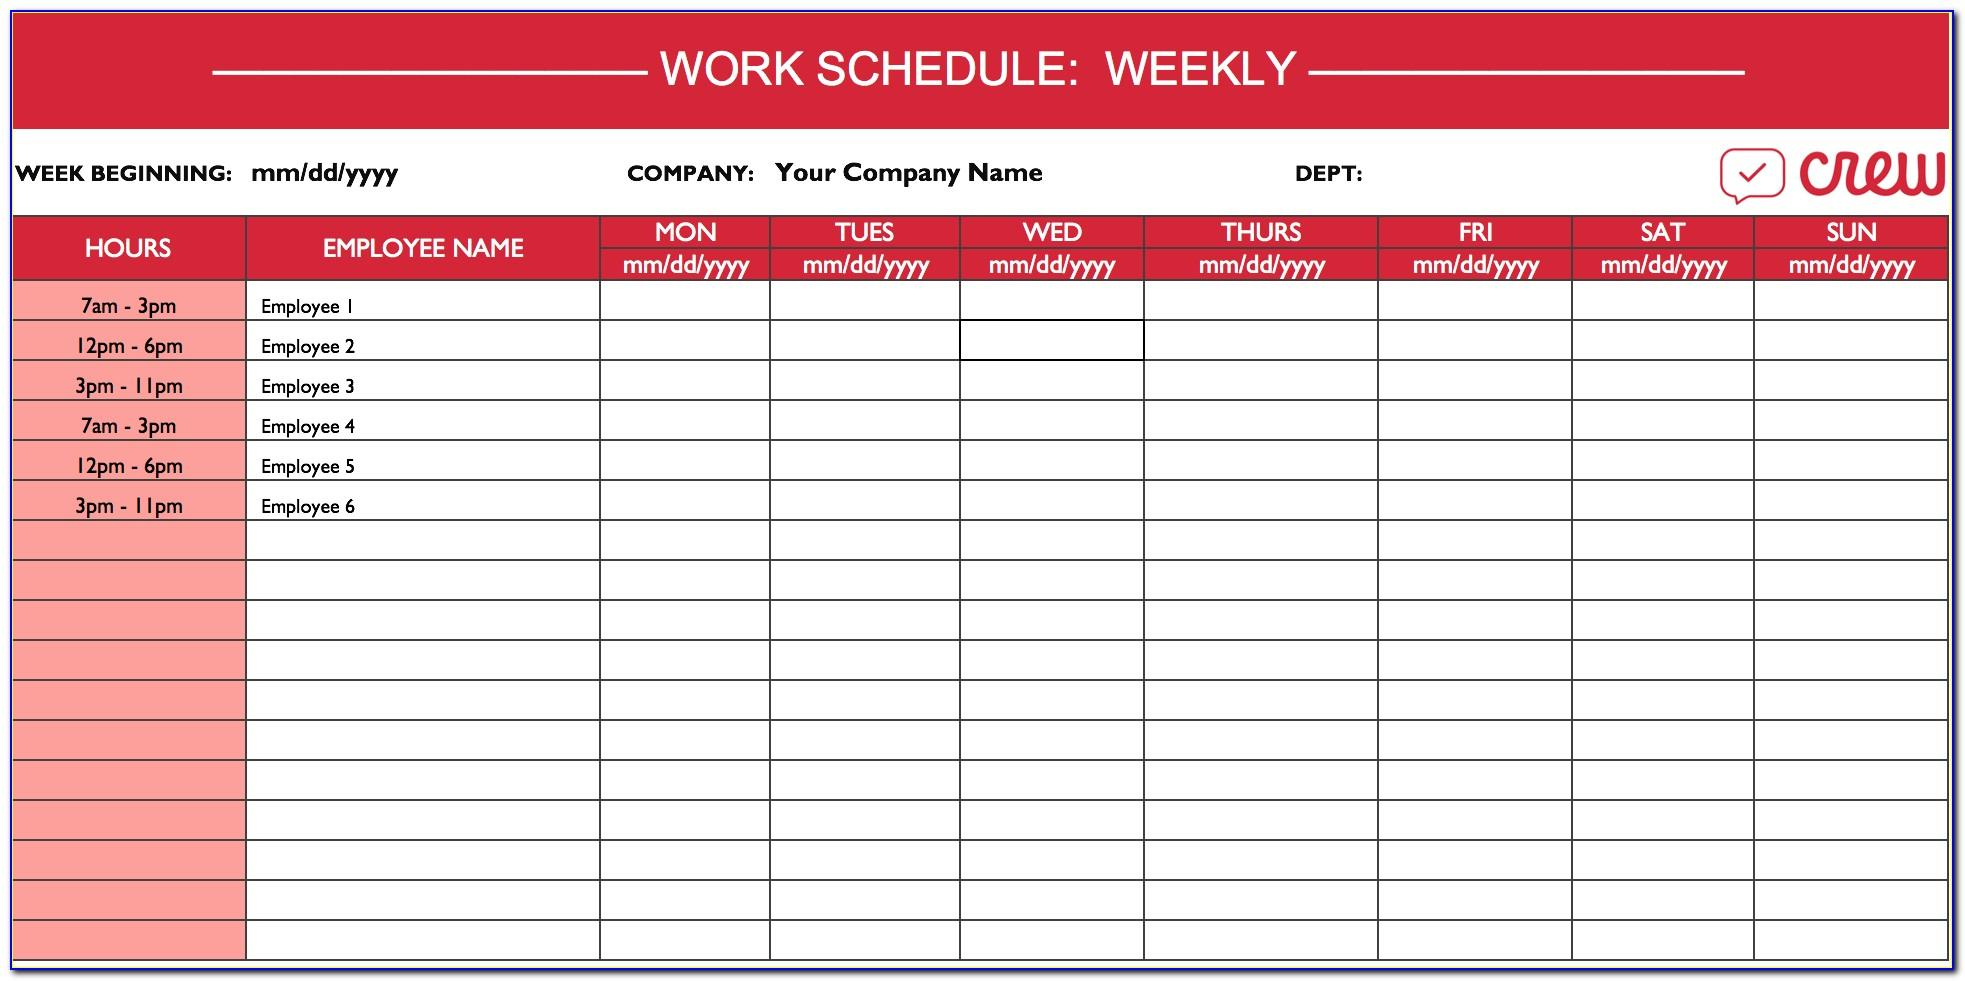 Weekly Work Schedule Template 2015